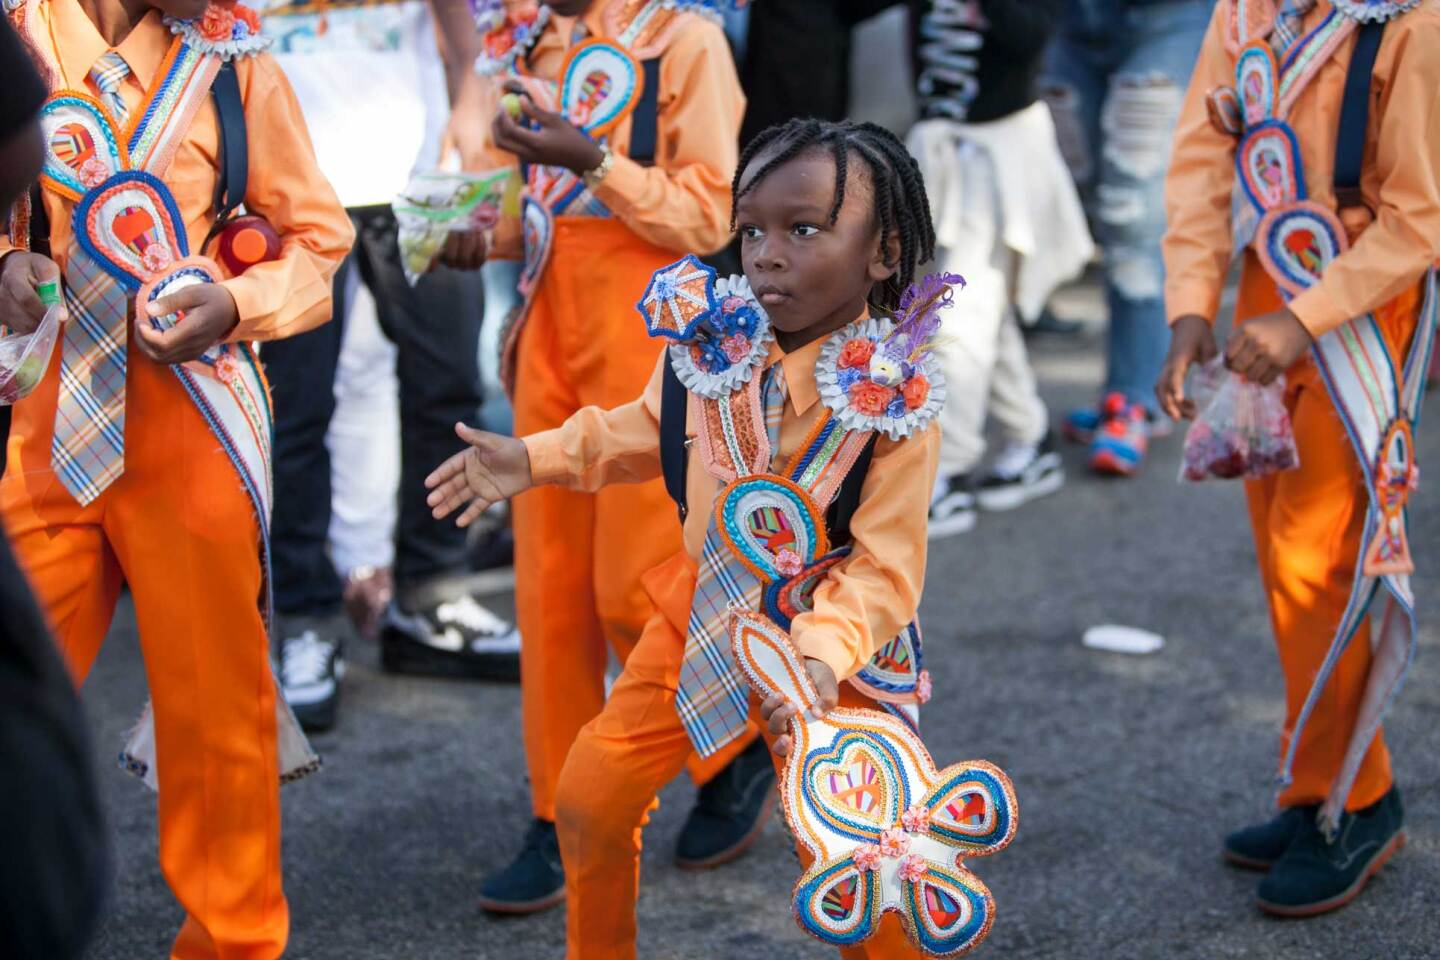 A young boy wearing colorful regalia participates in a New Orleans parade. | Nicky Milne/Thomson Reuters Foundation